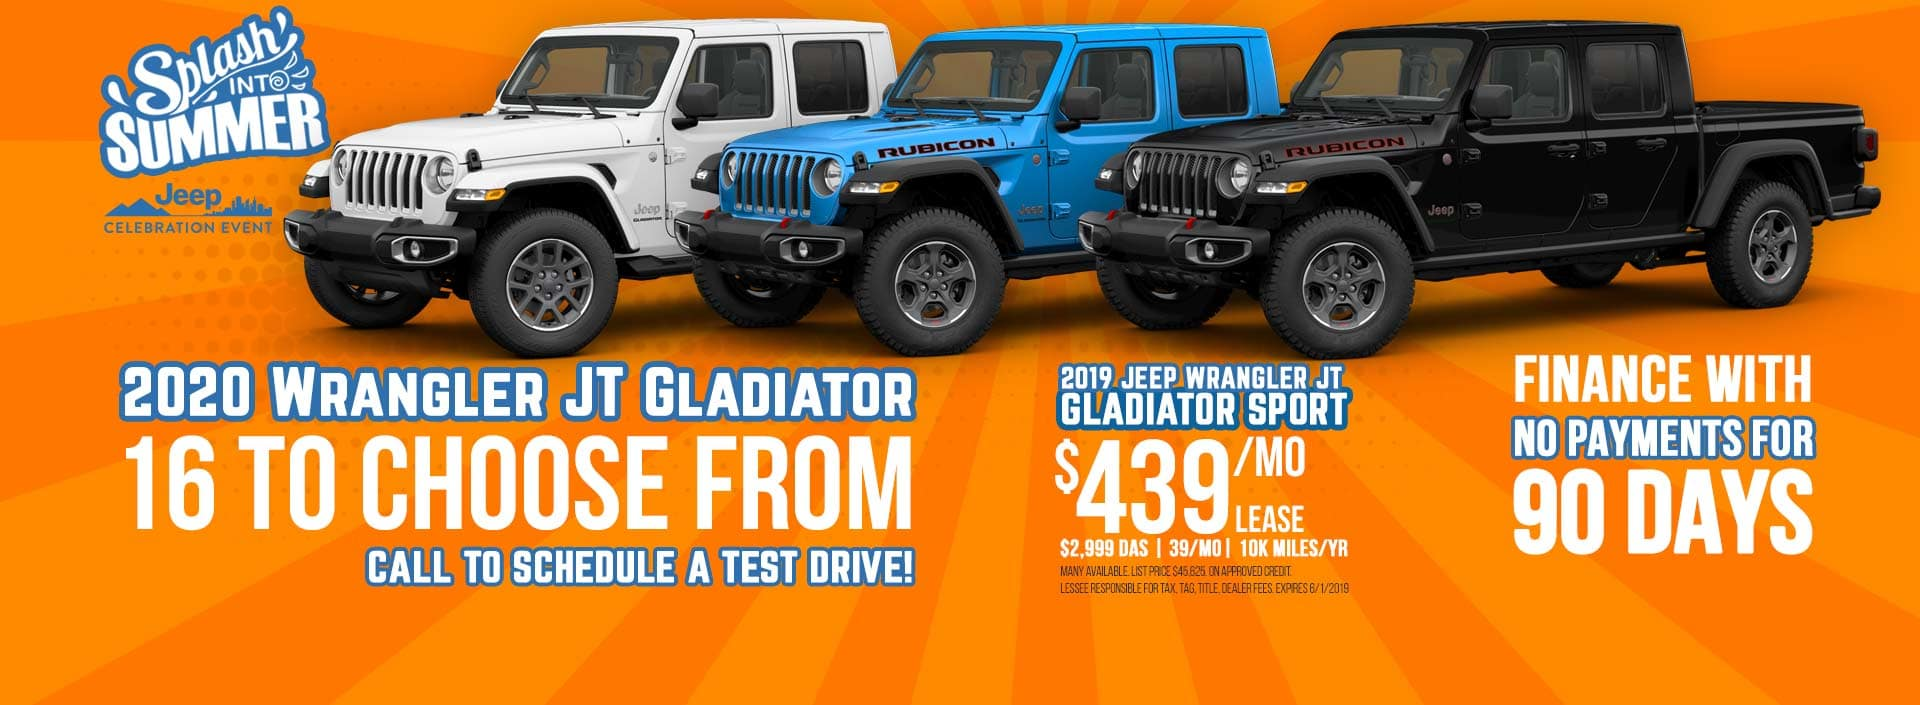 2020 Jeep Wrangler Gladiator Sale